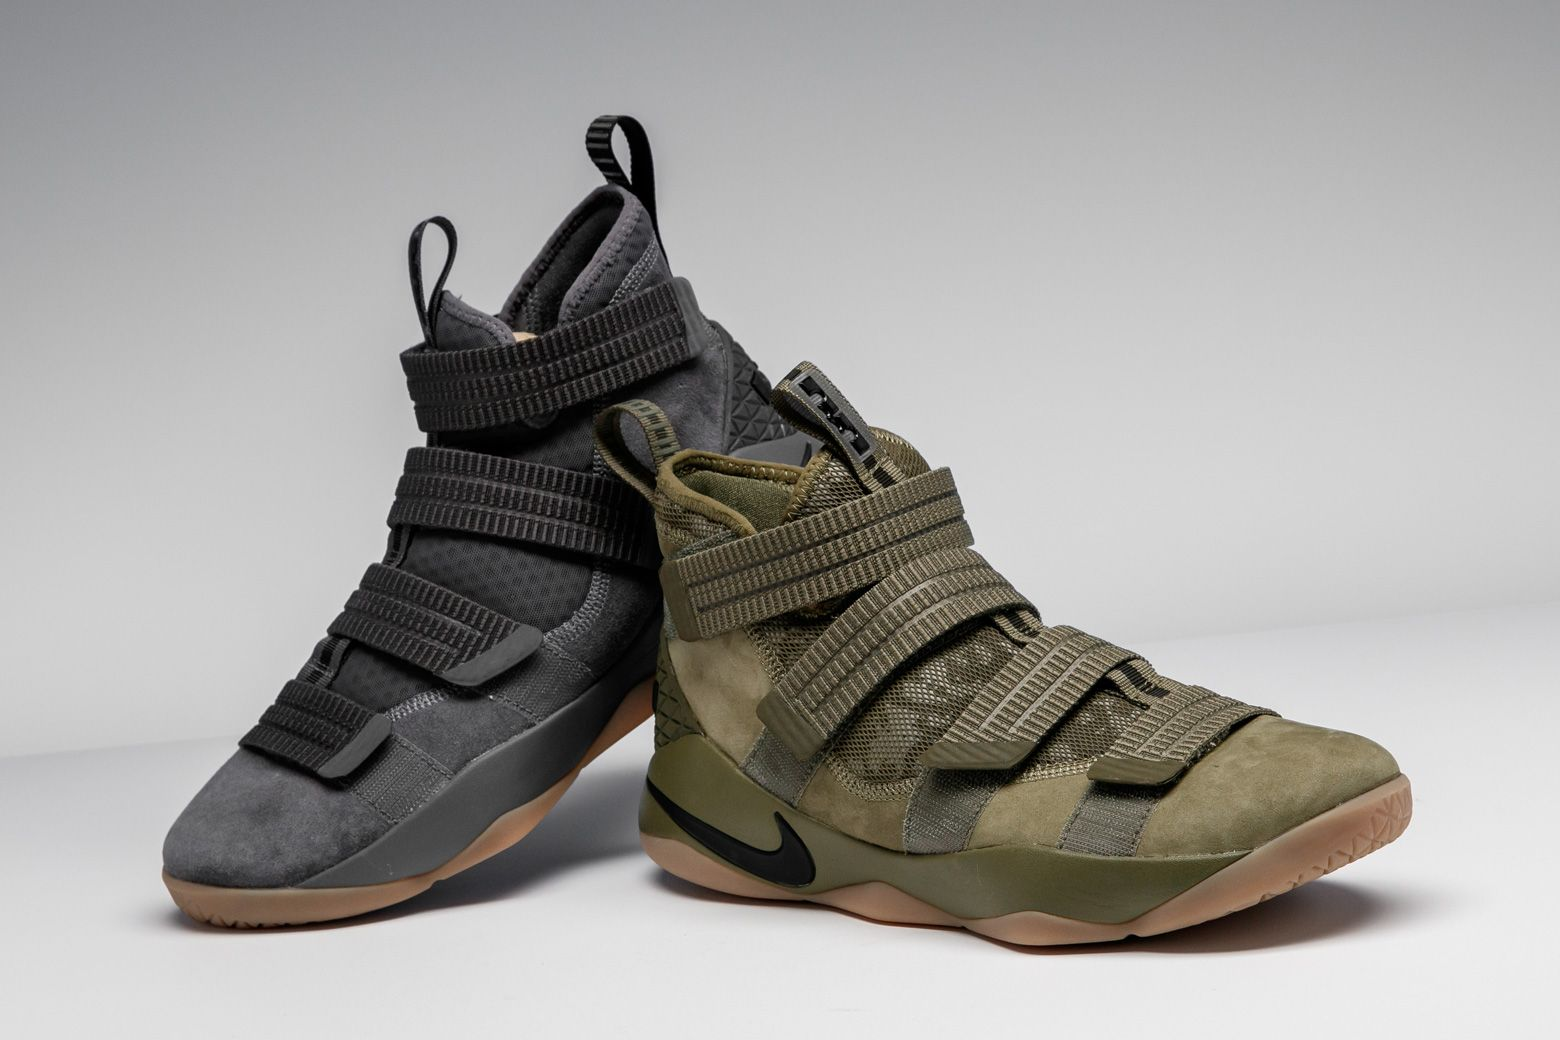 4e7b7163075 SG offers two new Lebron Soldier 11 SFG kicks for below retail. Which  colorway is the dopest